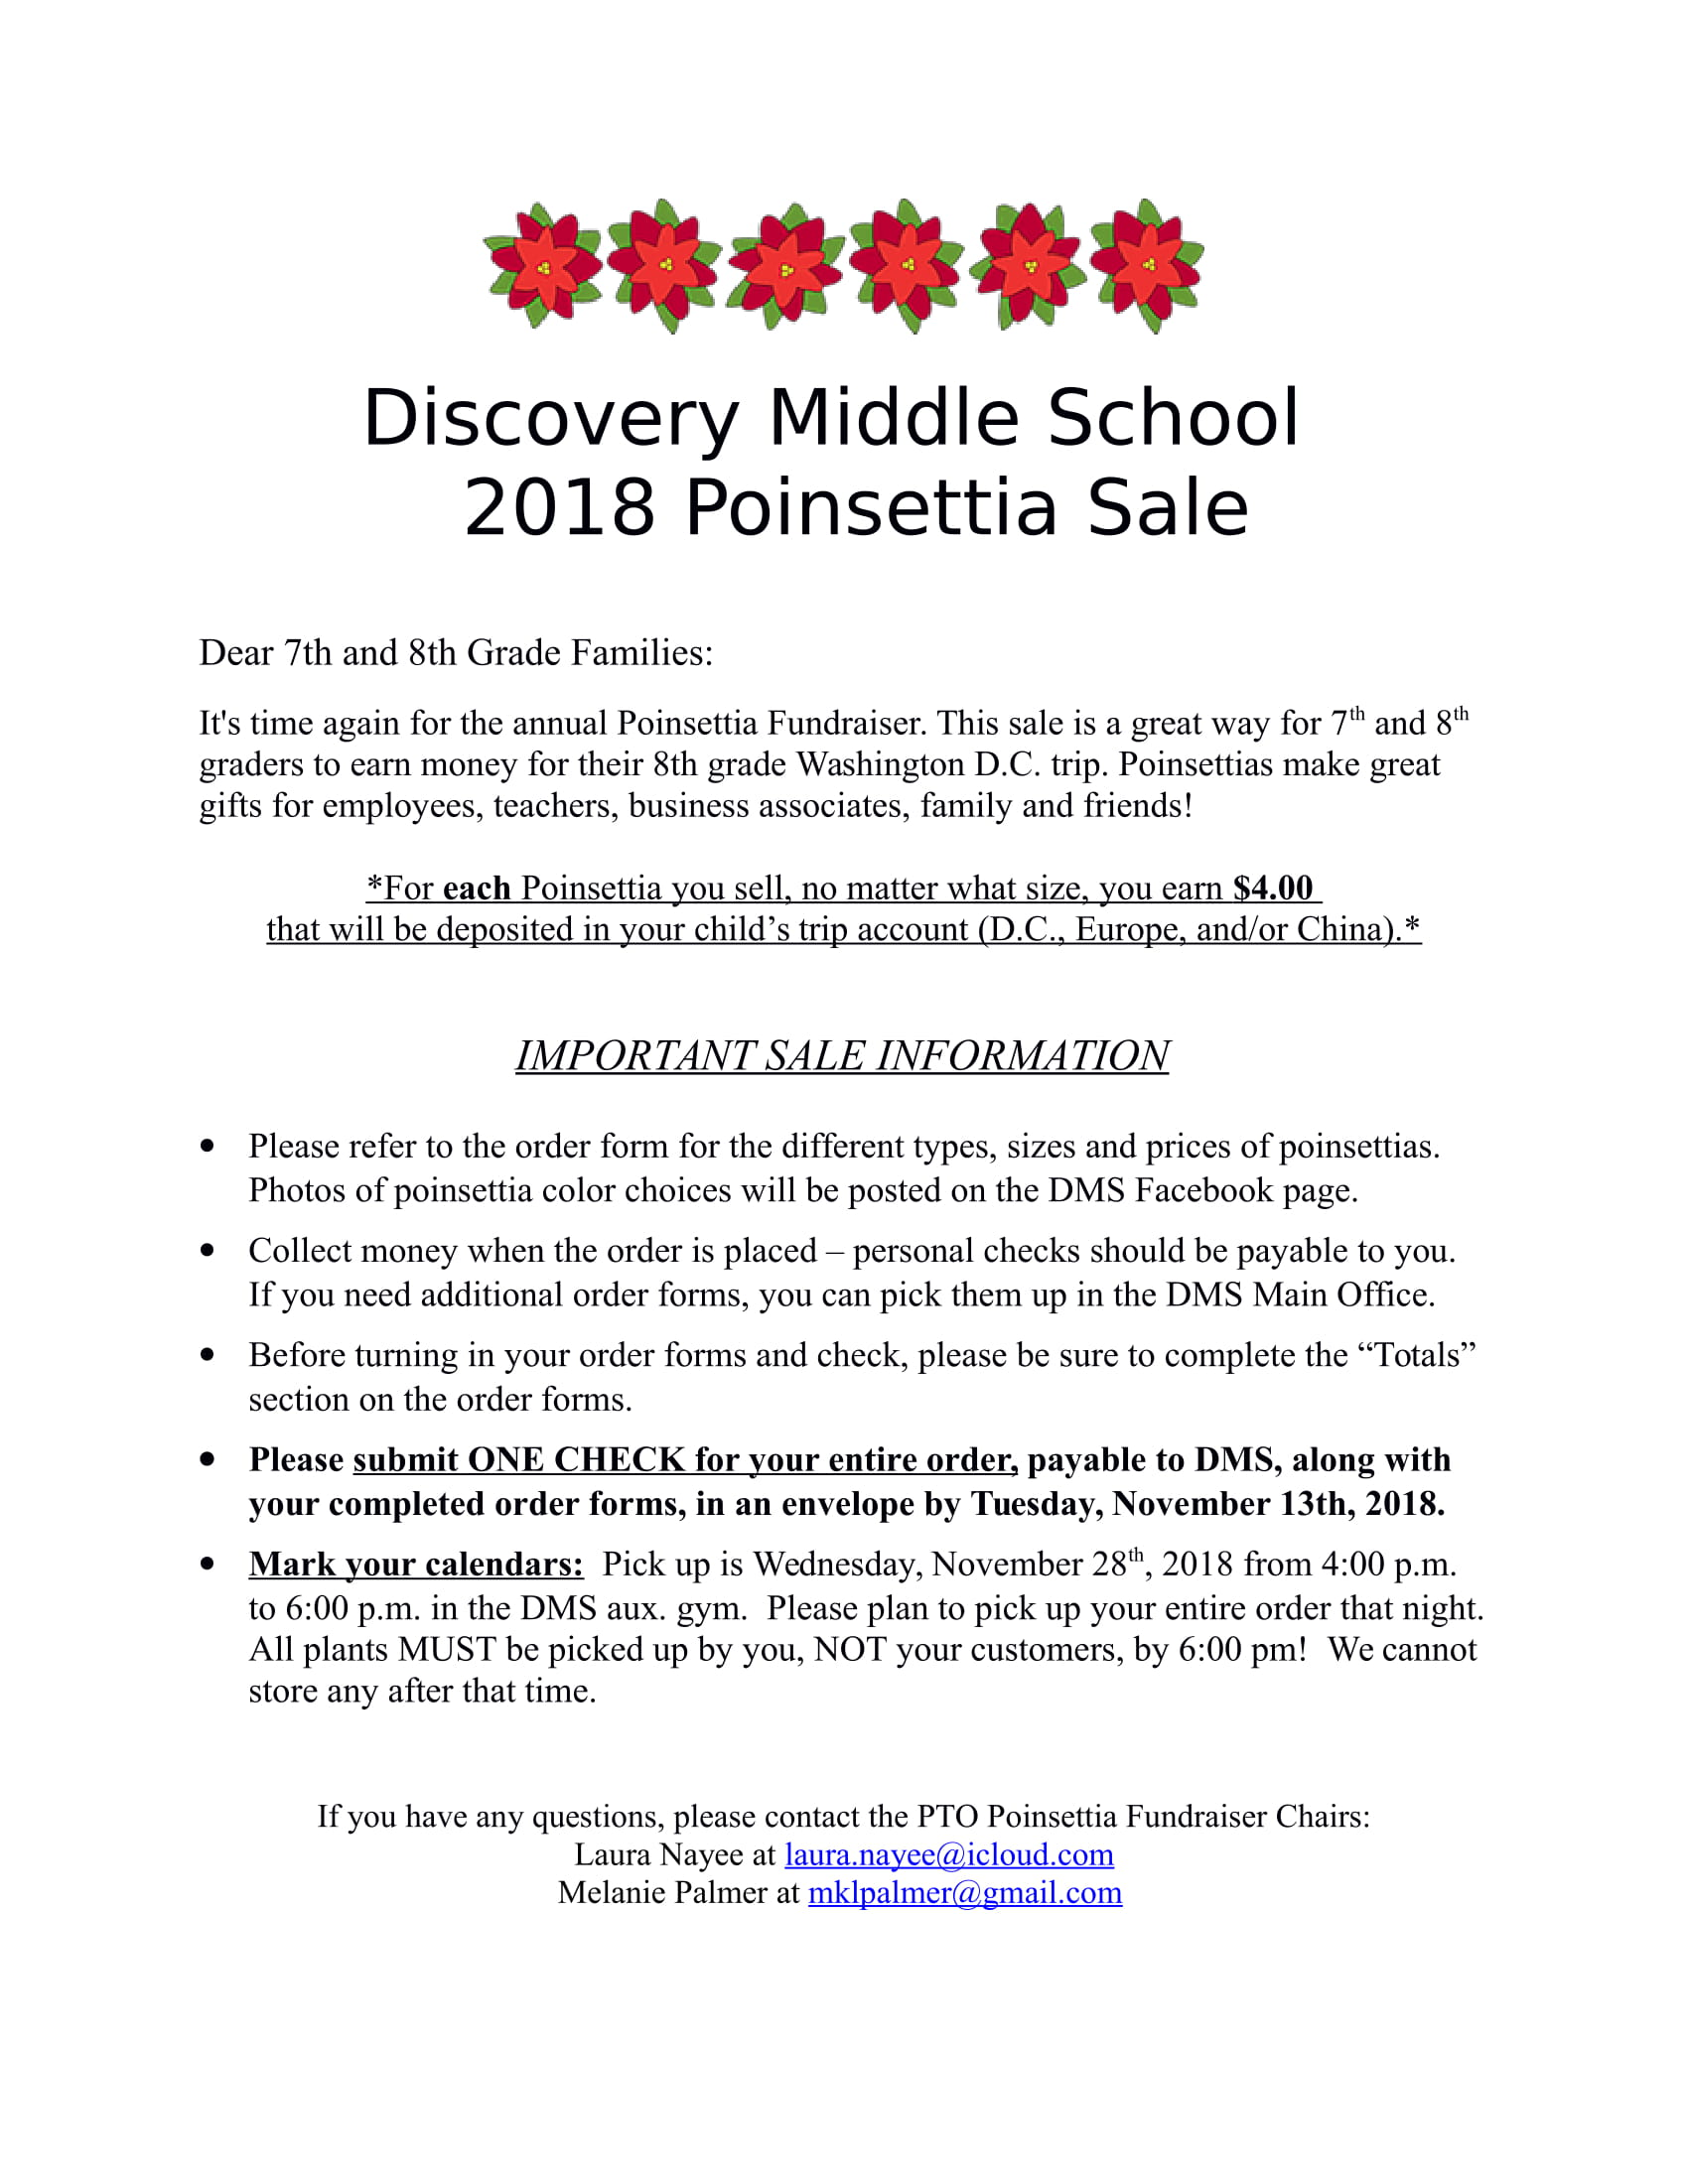 2018 Poinsettia Fundraiser Discovery Middle School